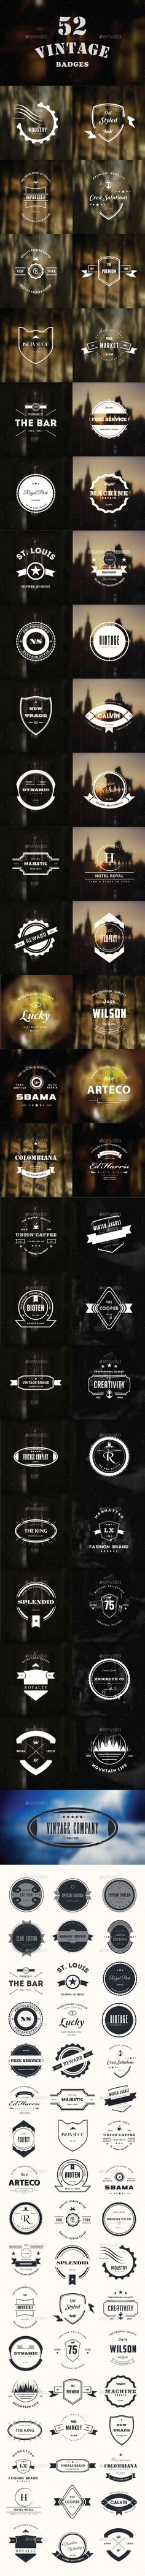 52 Retro Vintage Insignias & Logo-Badges-Bundle | #insignias #logo #badges | Download: http://graphicriver.net/item/52-retro-vintage-insignias-logobadgesbundle/10443591?ref=ksioks